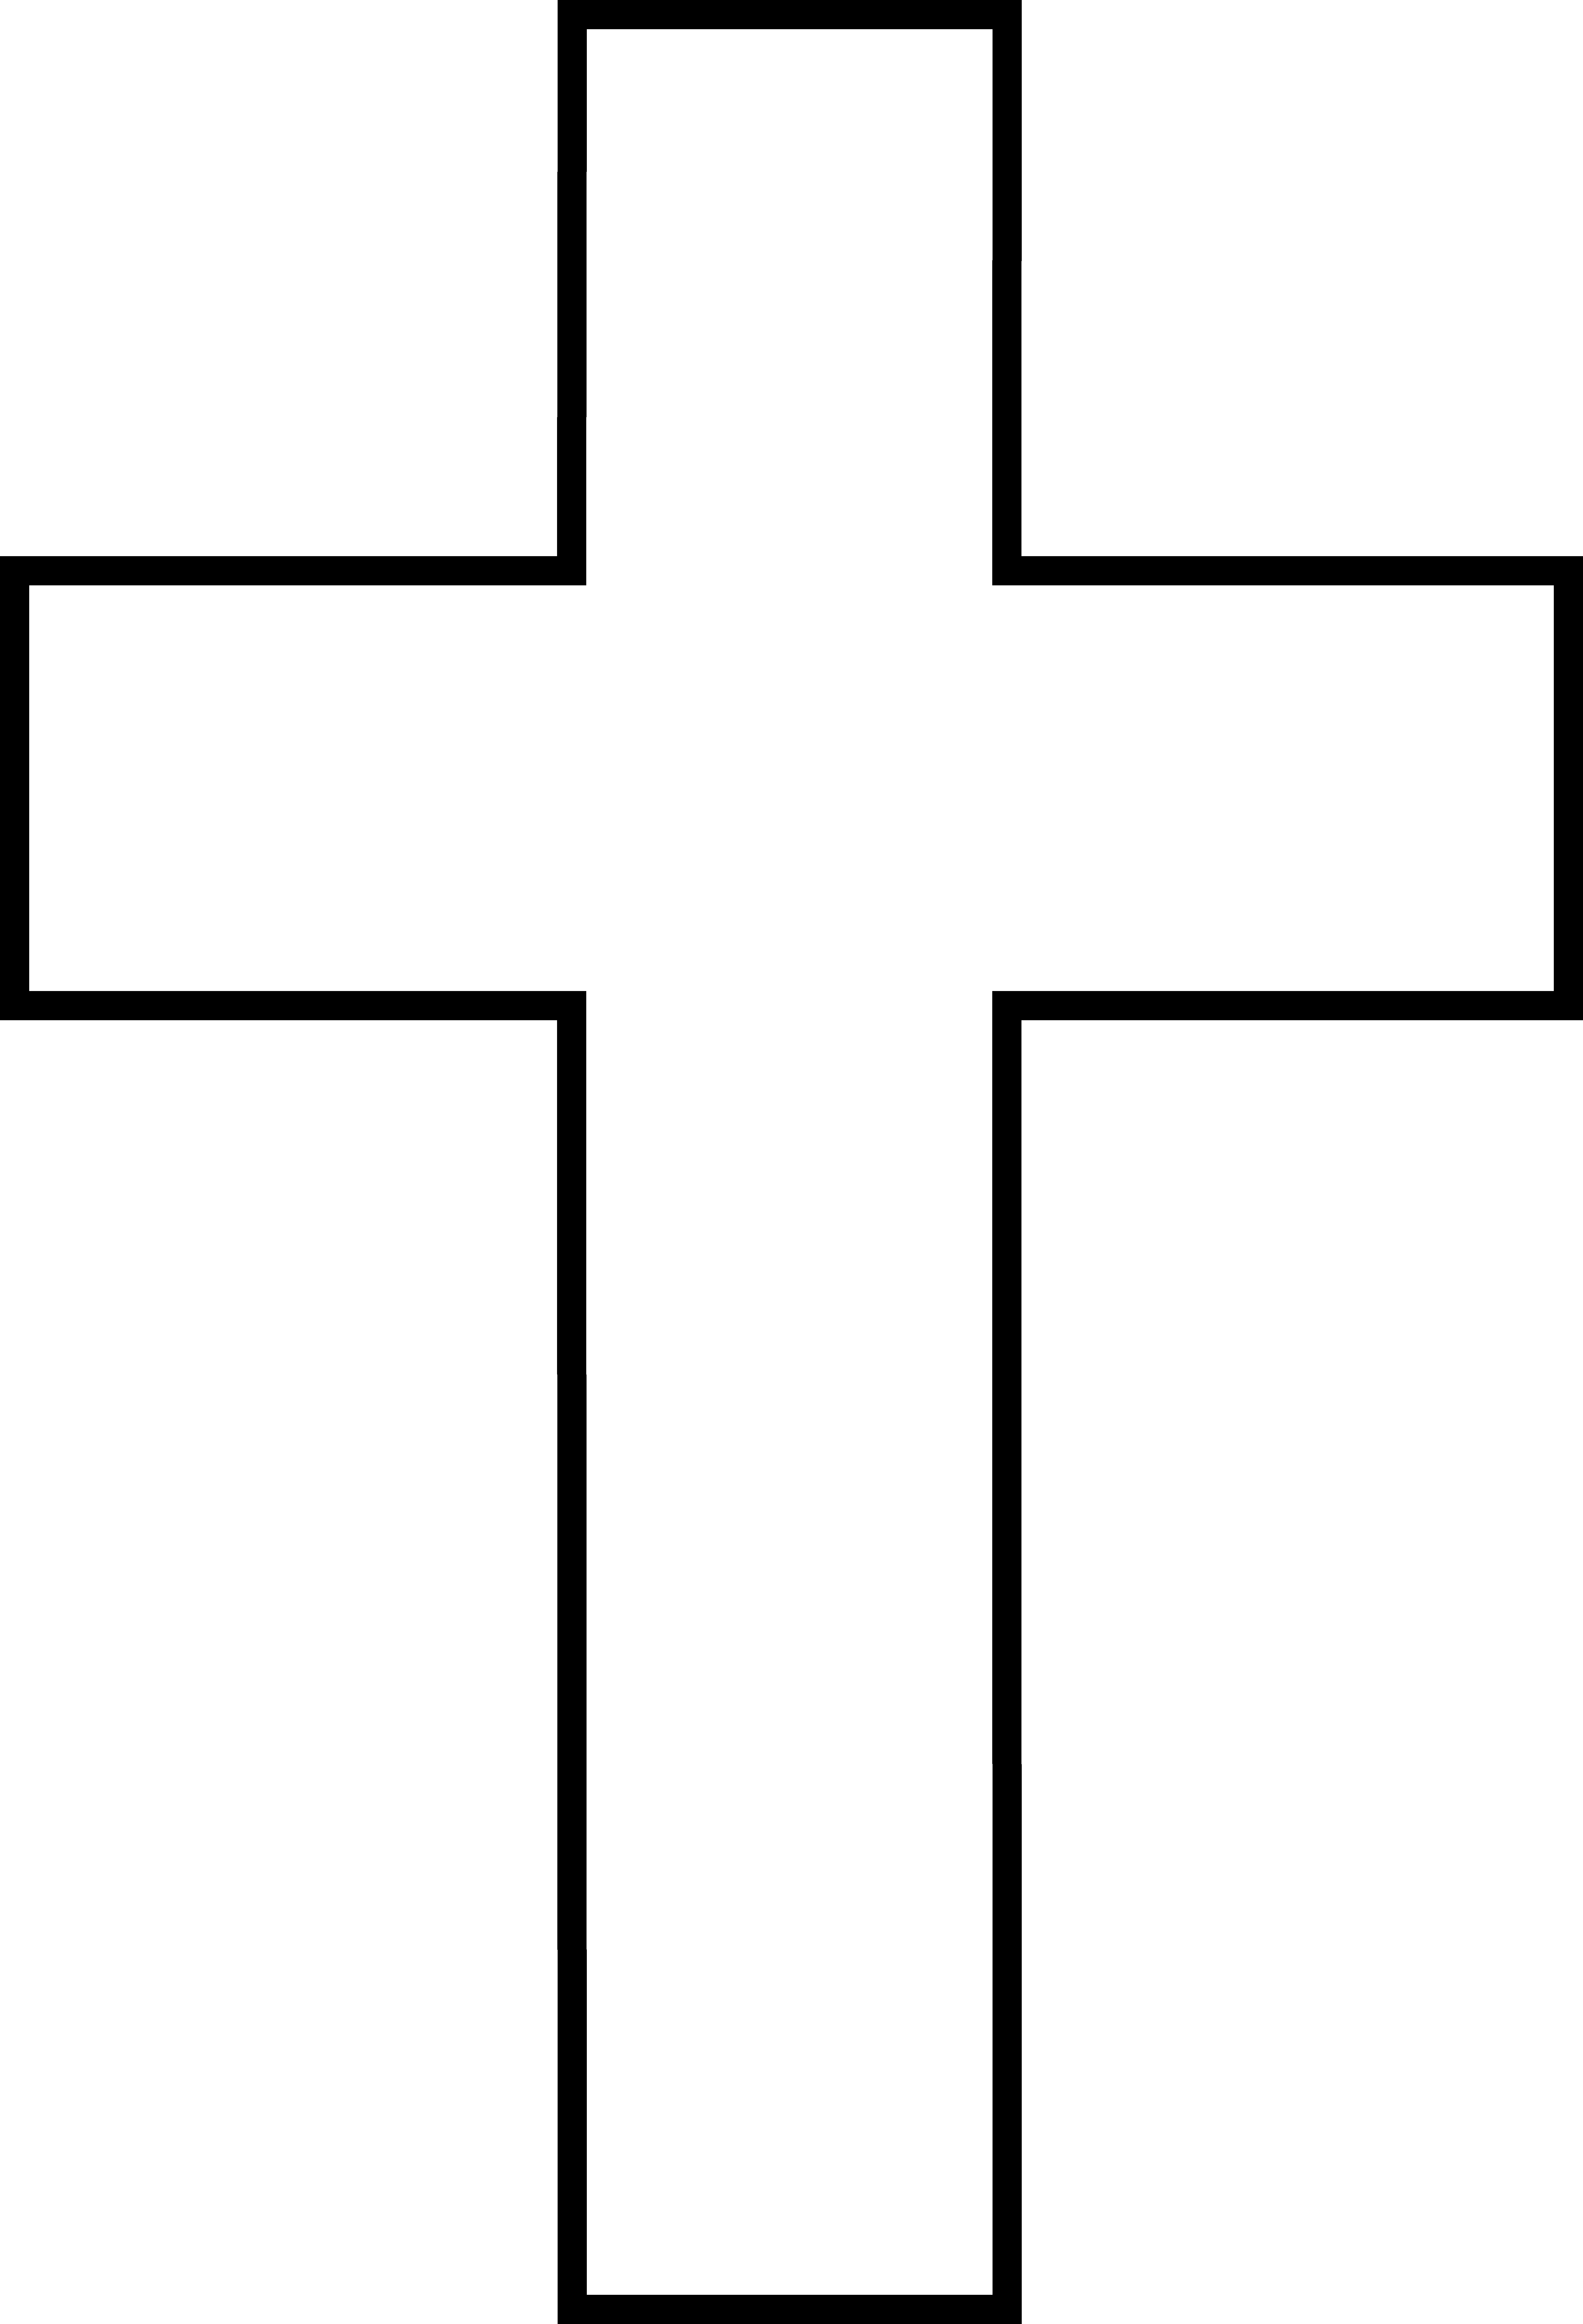 Free Cross Clipart Black And White | Coloring | Pinterest | Buttons ... black and white download